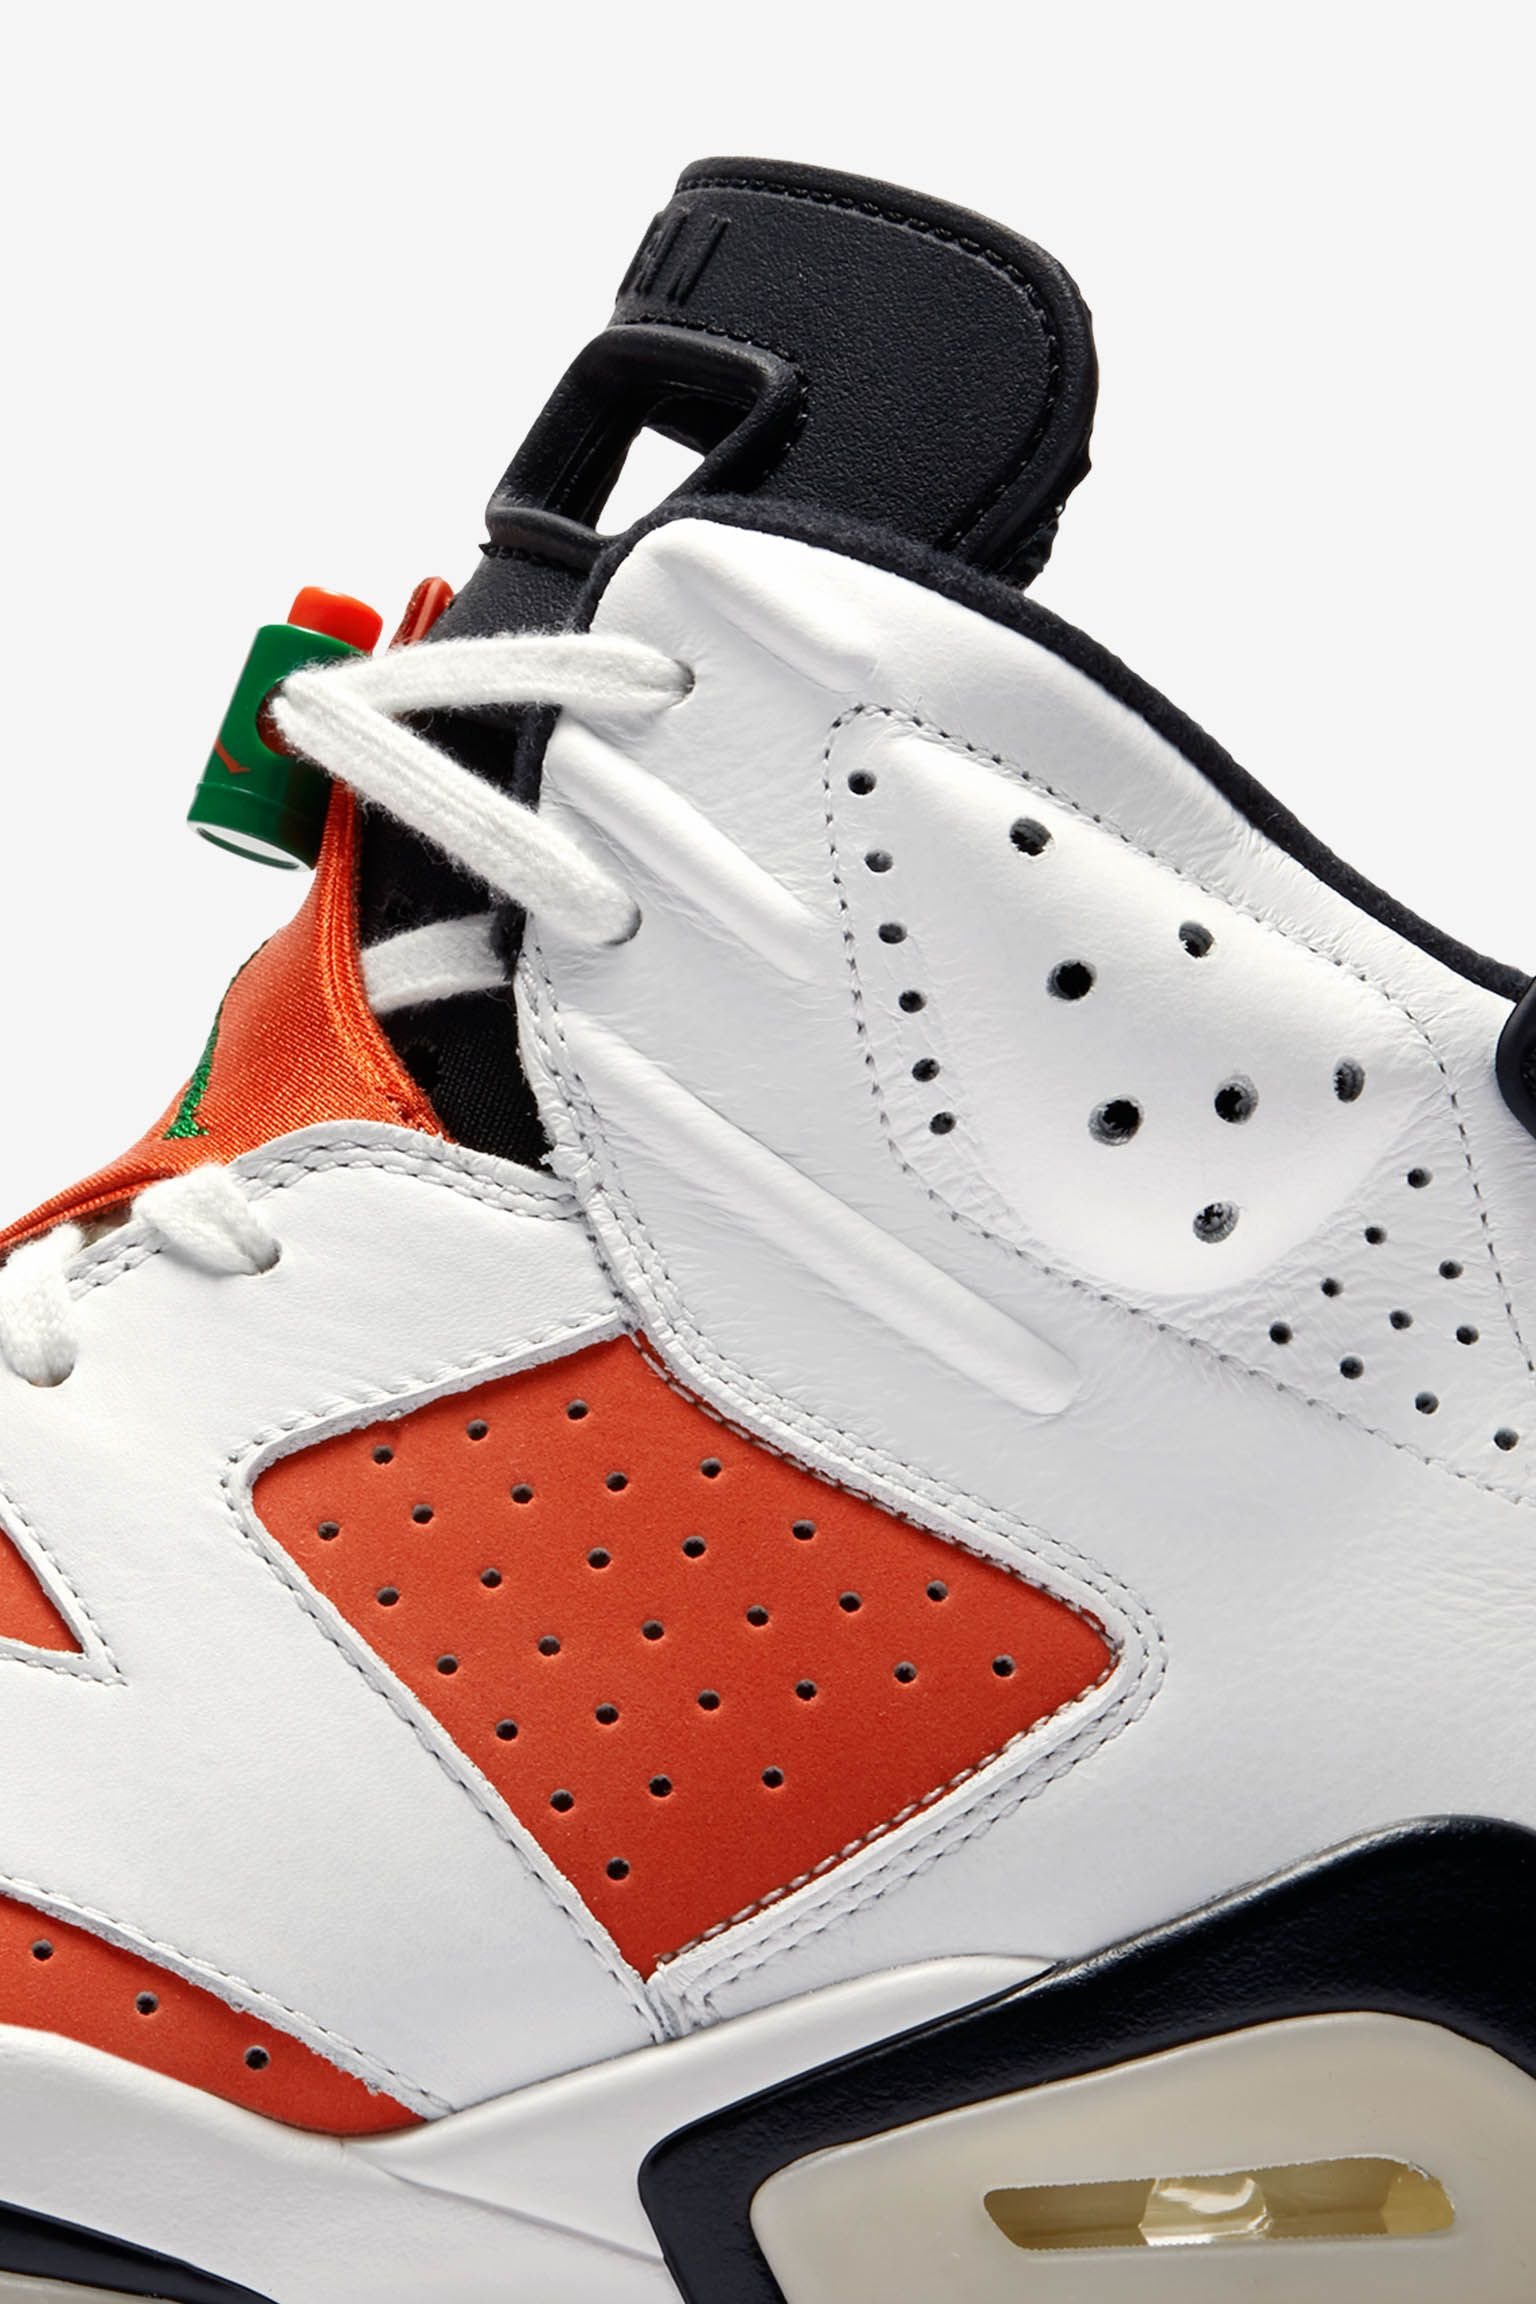 Air Jordan 6 'Like Mike' Release Date